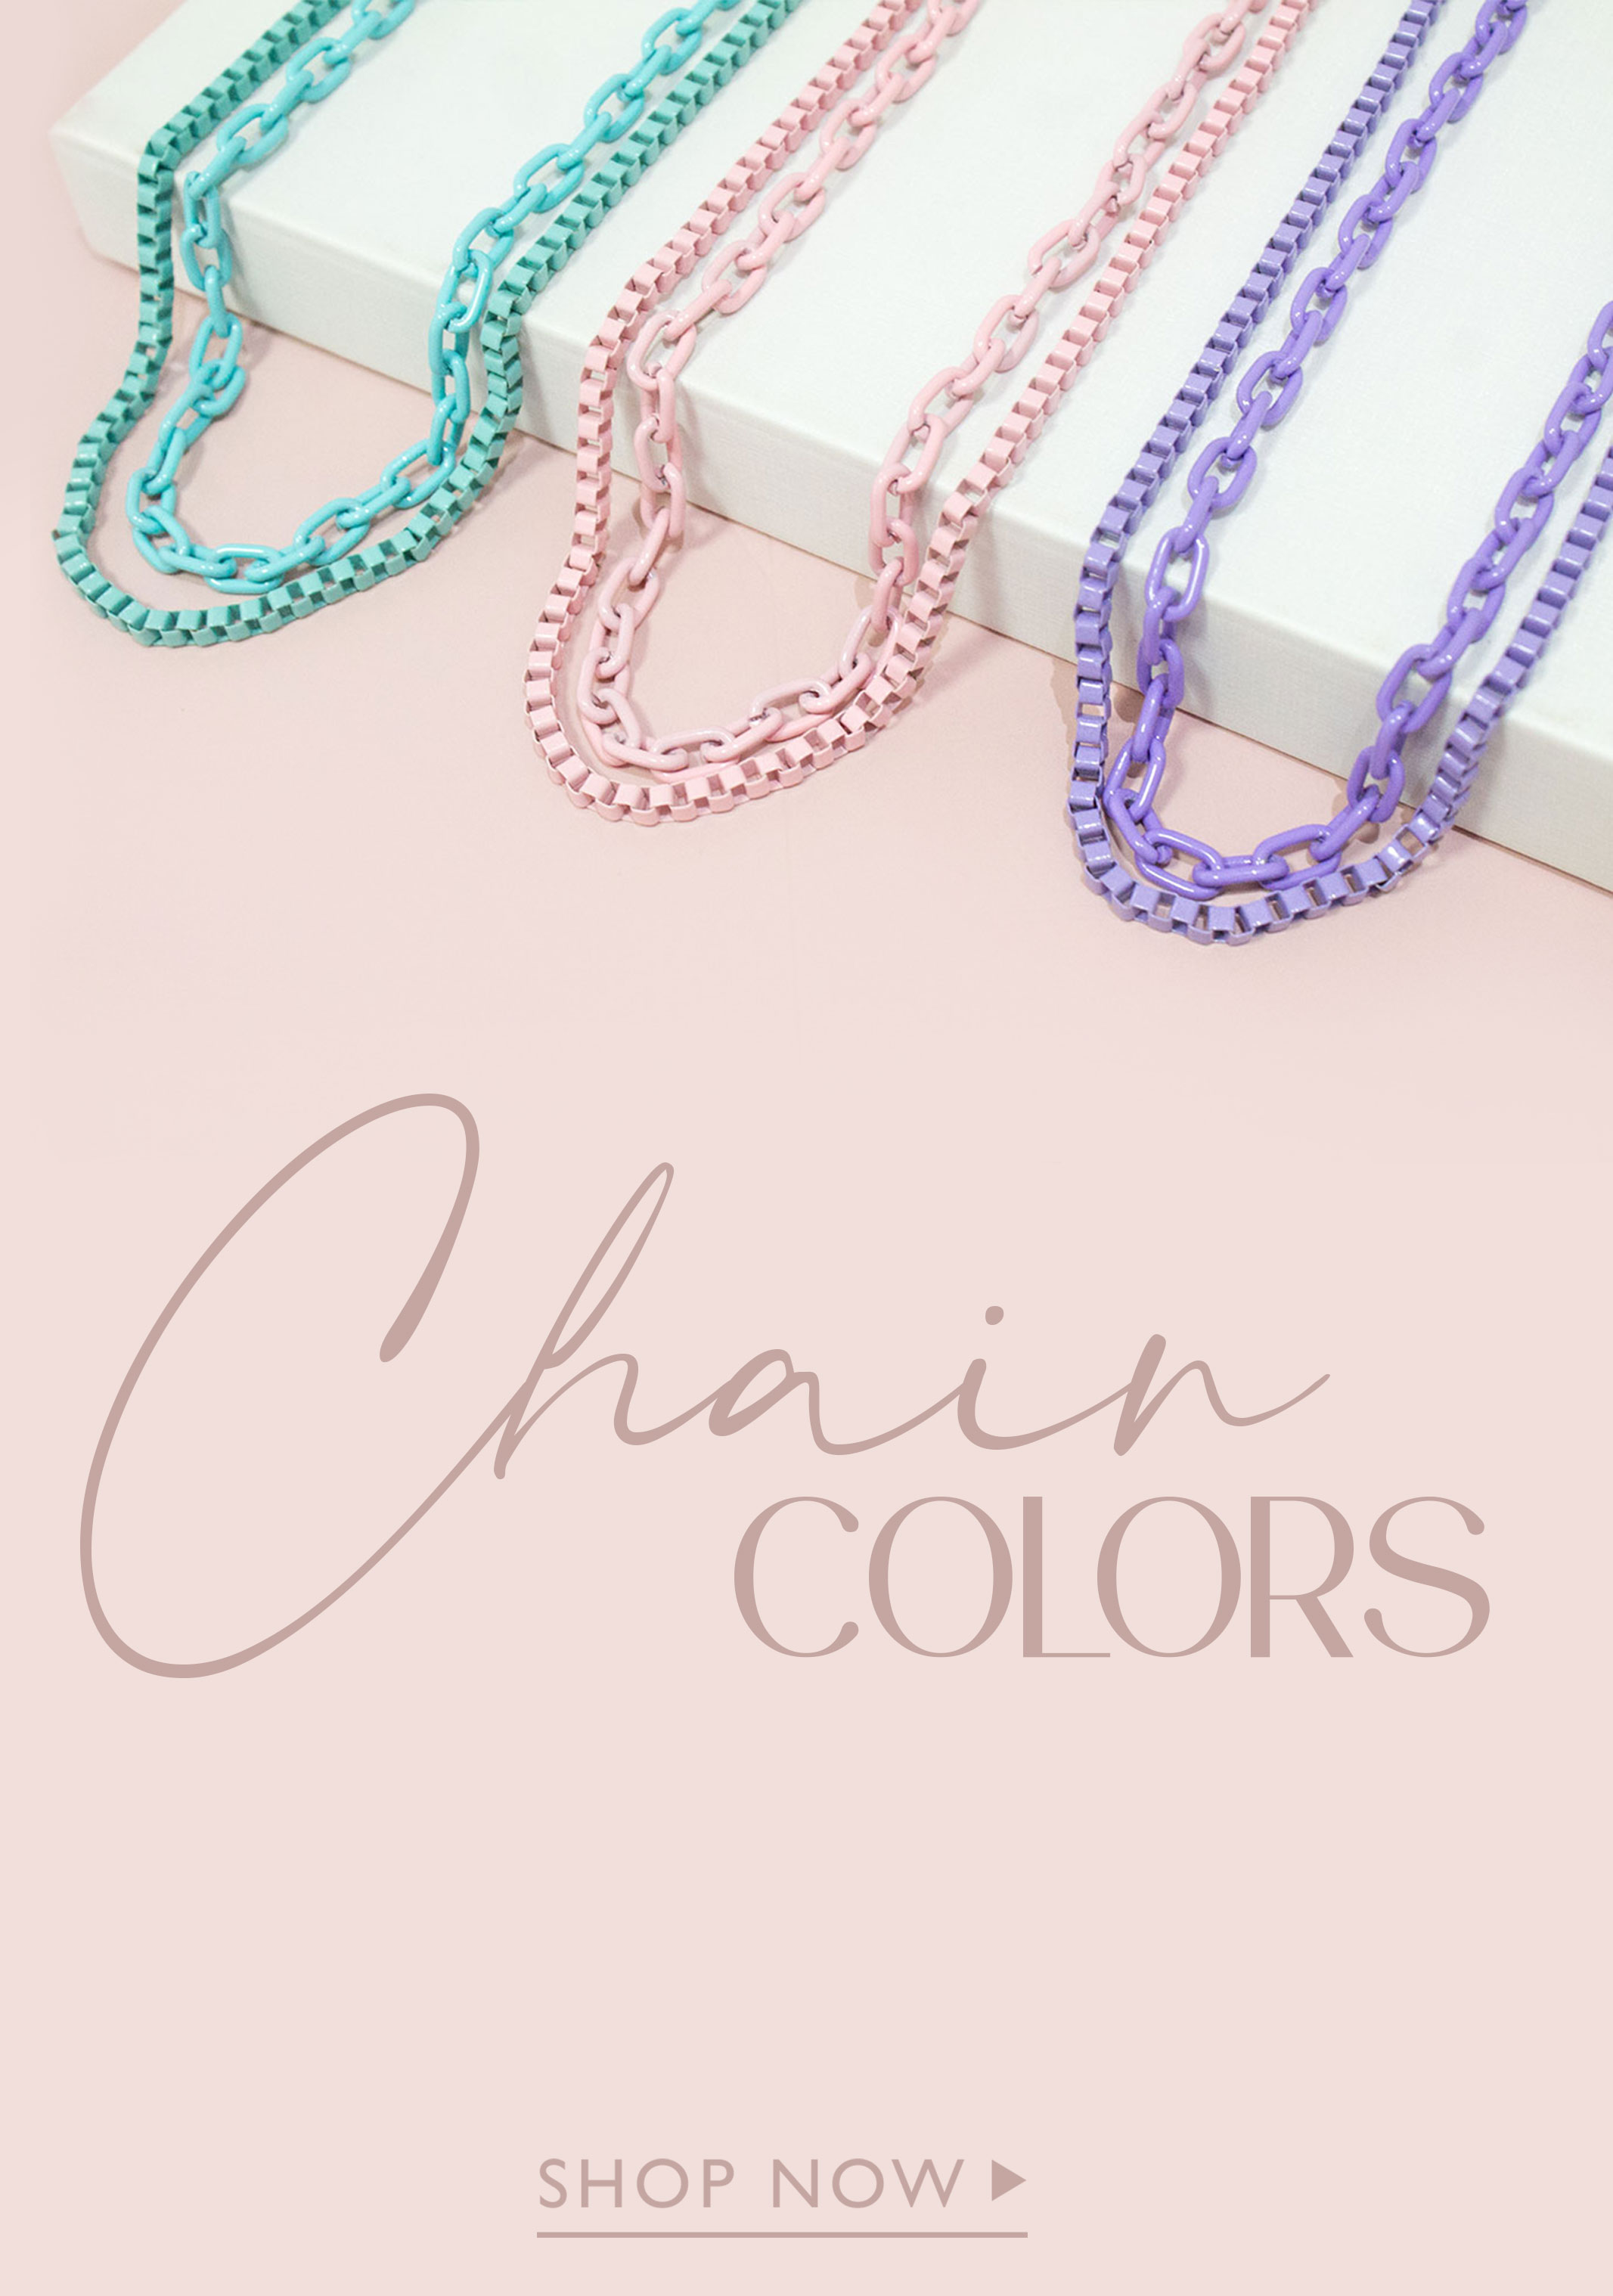 chain colors